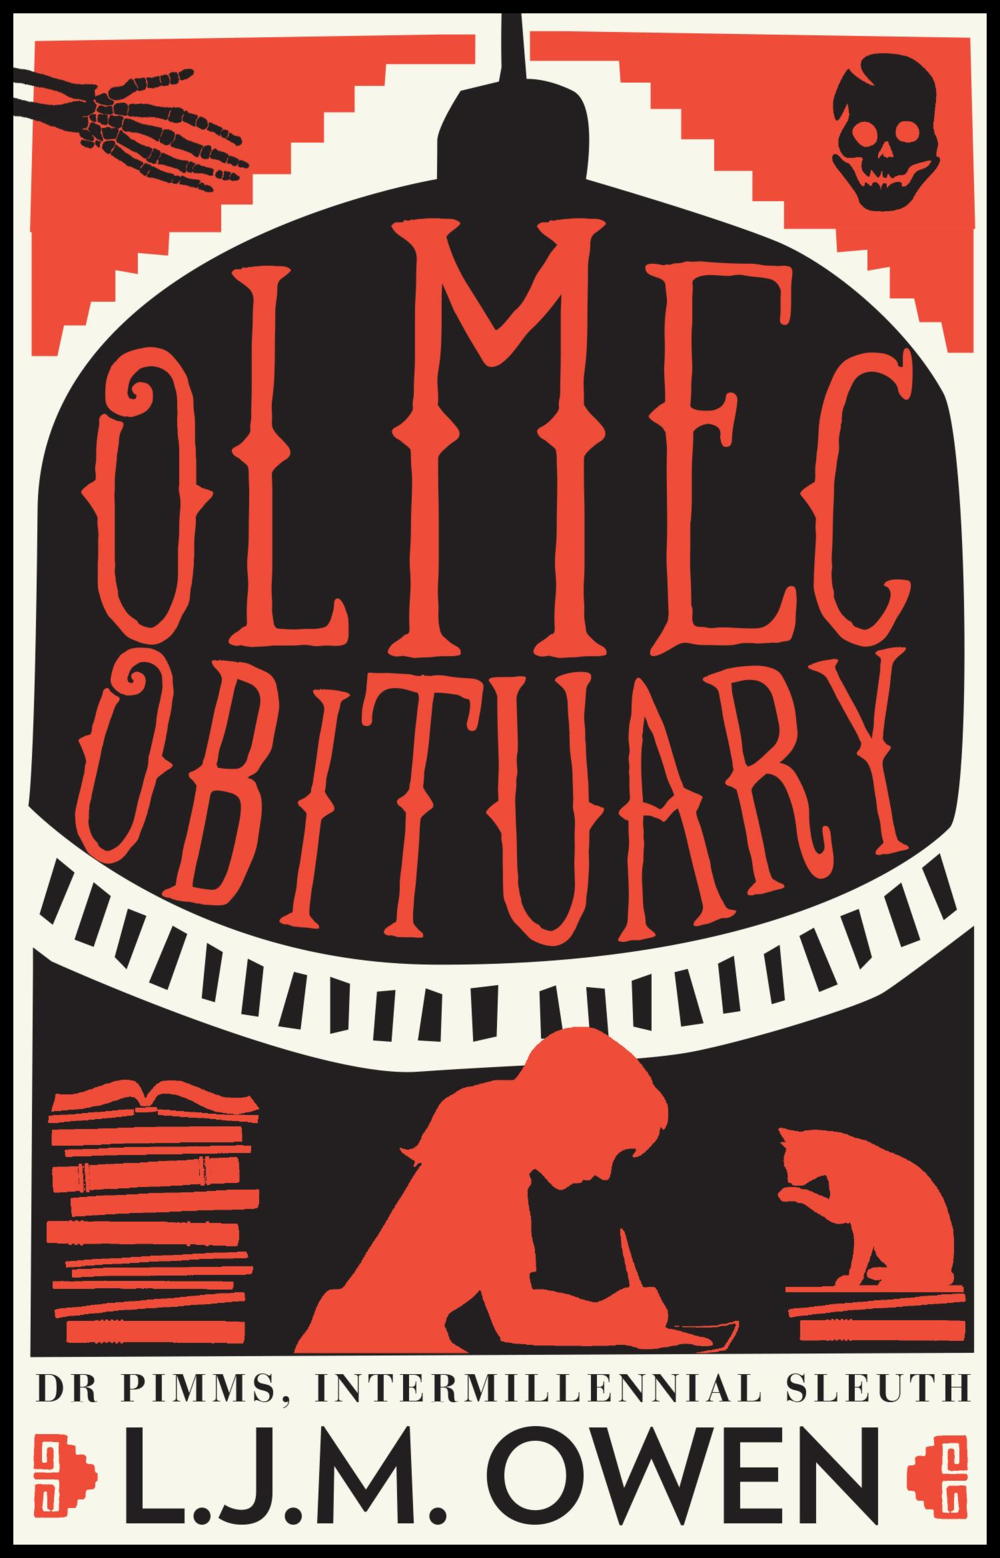 BOOK 1:   OLMEC OBITUARY